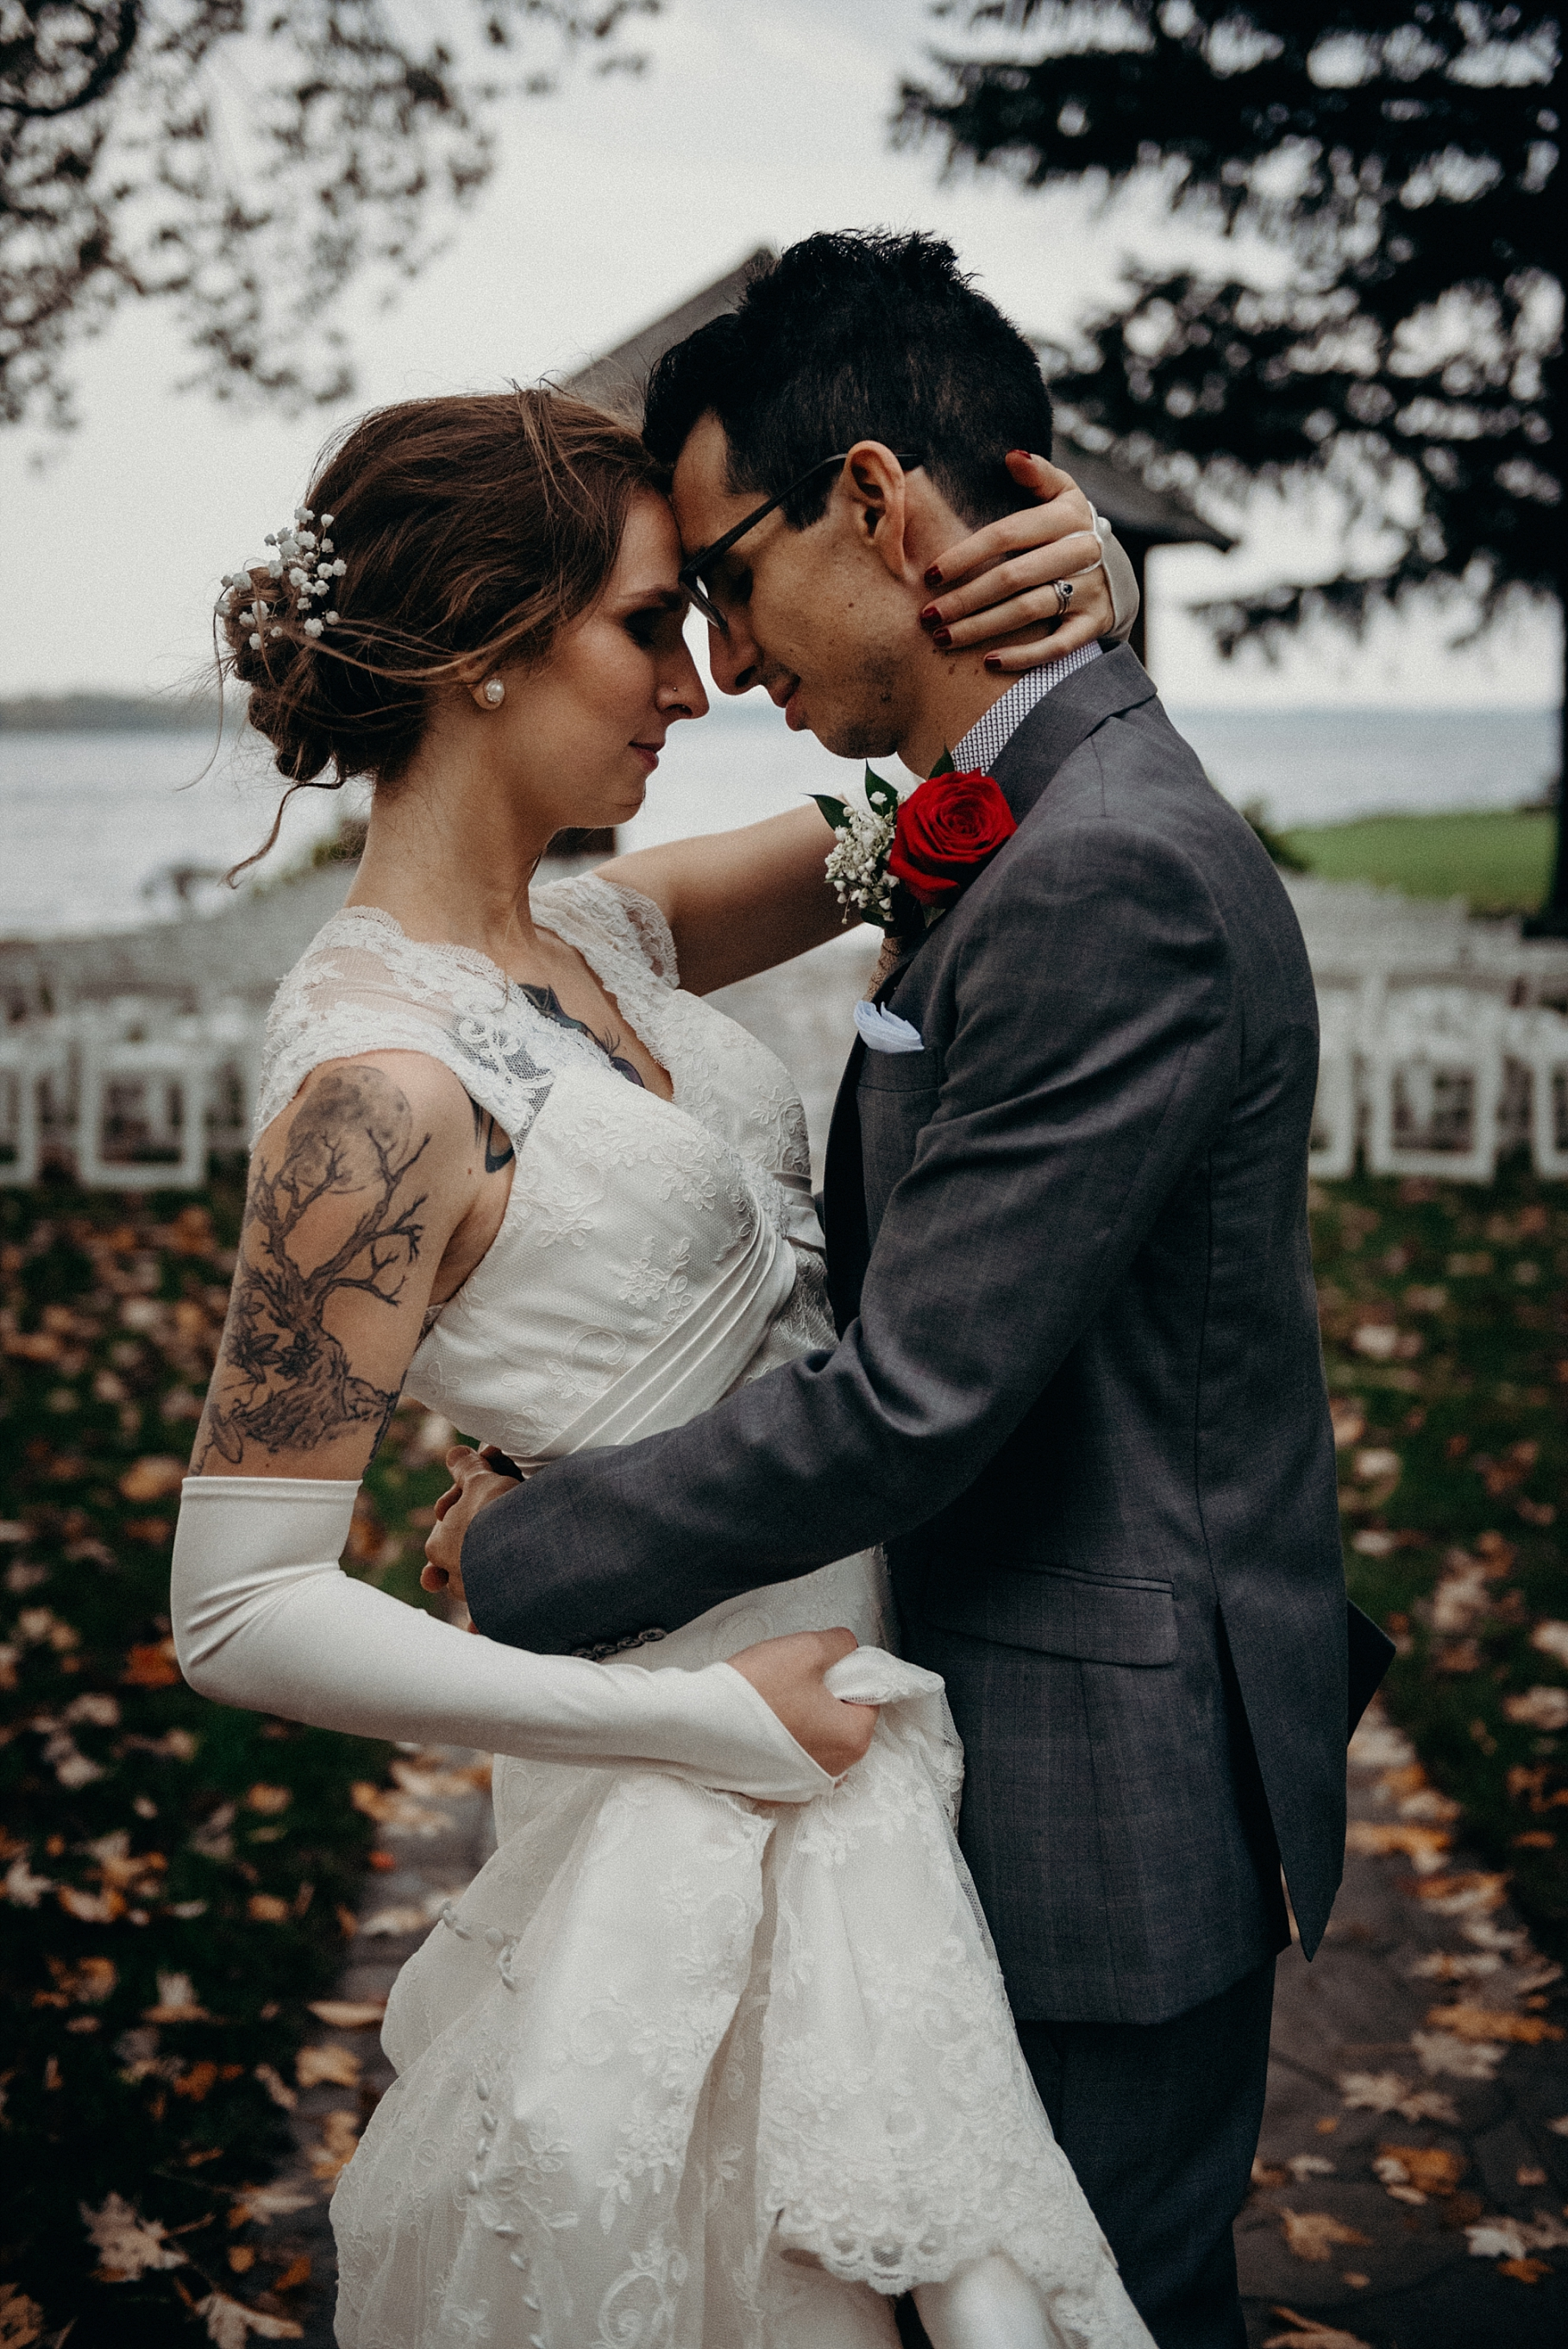 Mocha Tree Studios Ottawa Wedding and Engagement Photographer and Videographer Dark Moody Intimate Authentic Modern Romantic Cinematic Best Candid